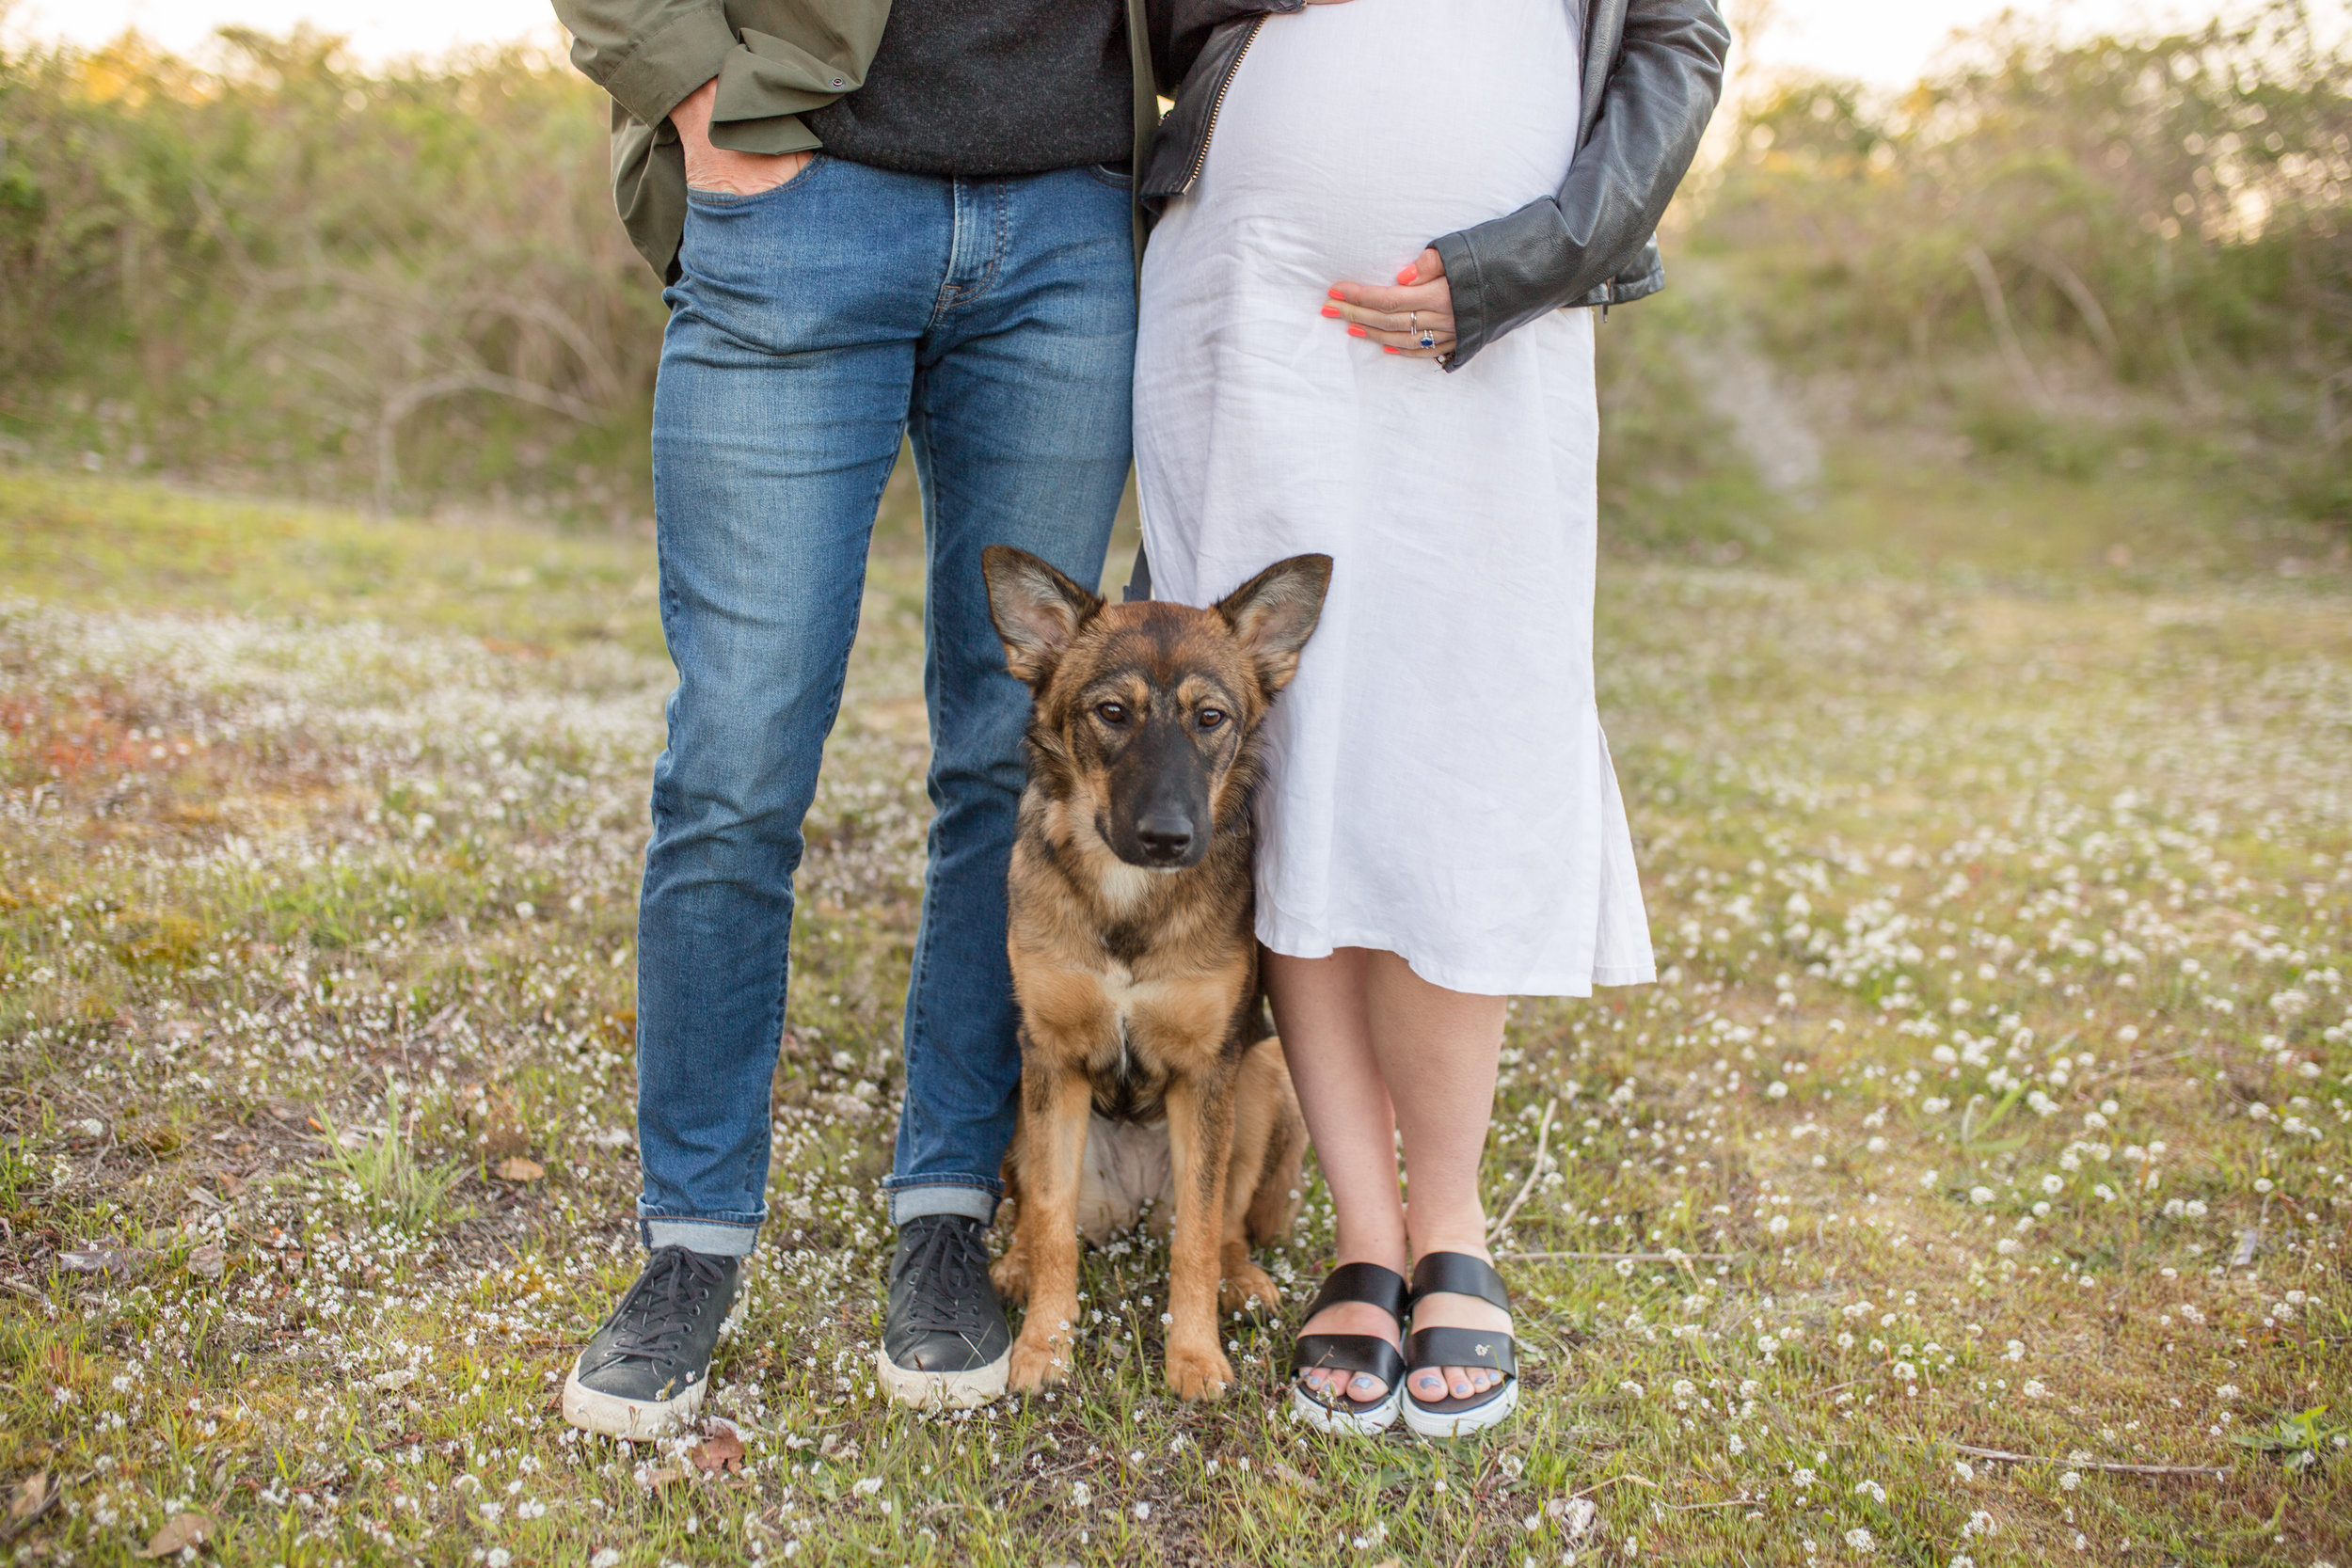 Jess&Geord Maternity Photos-38.jpg